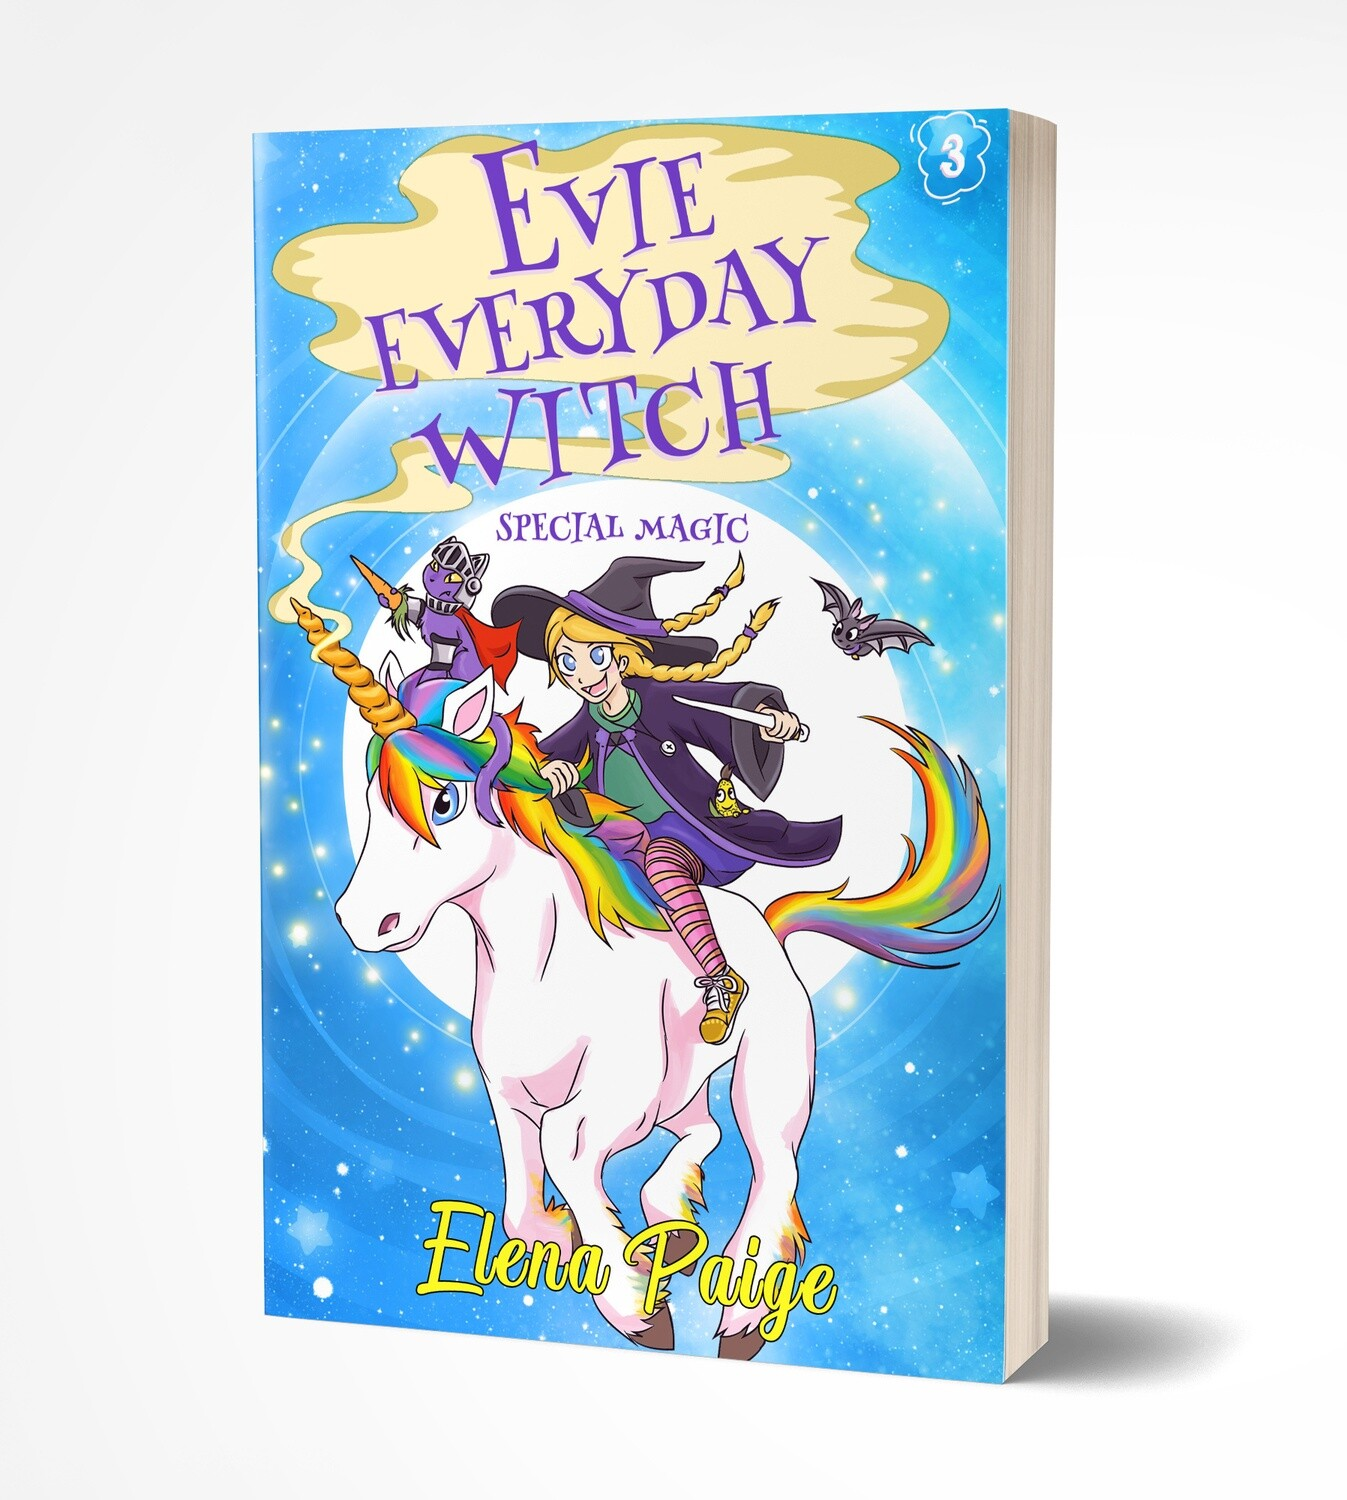 Special Magic (Evie Everyday Witch Book 3) - Hardback Edition 6x9